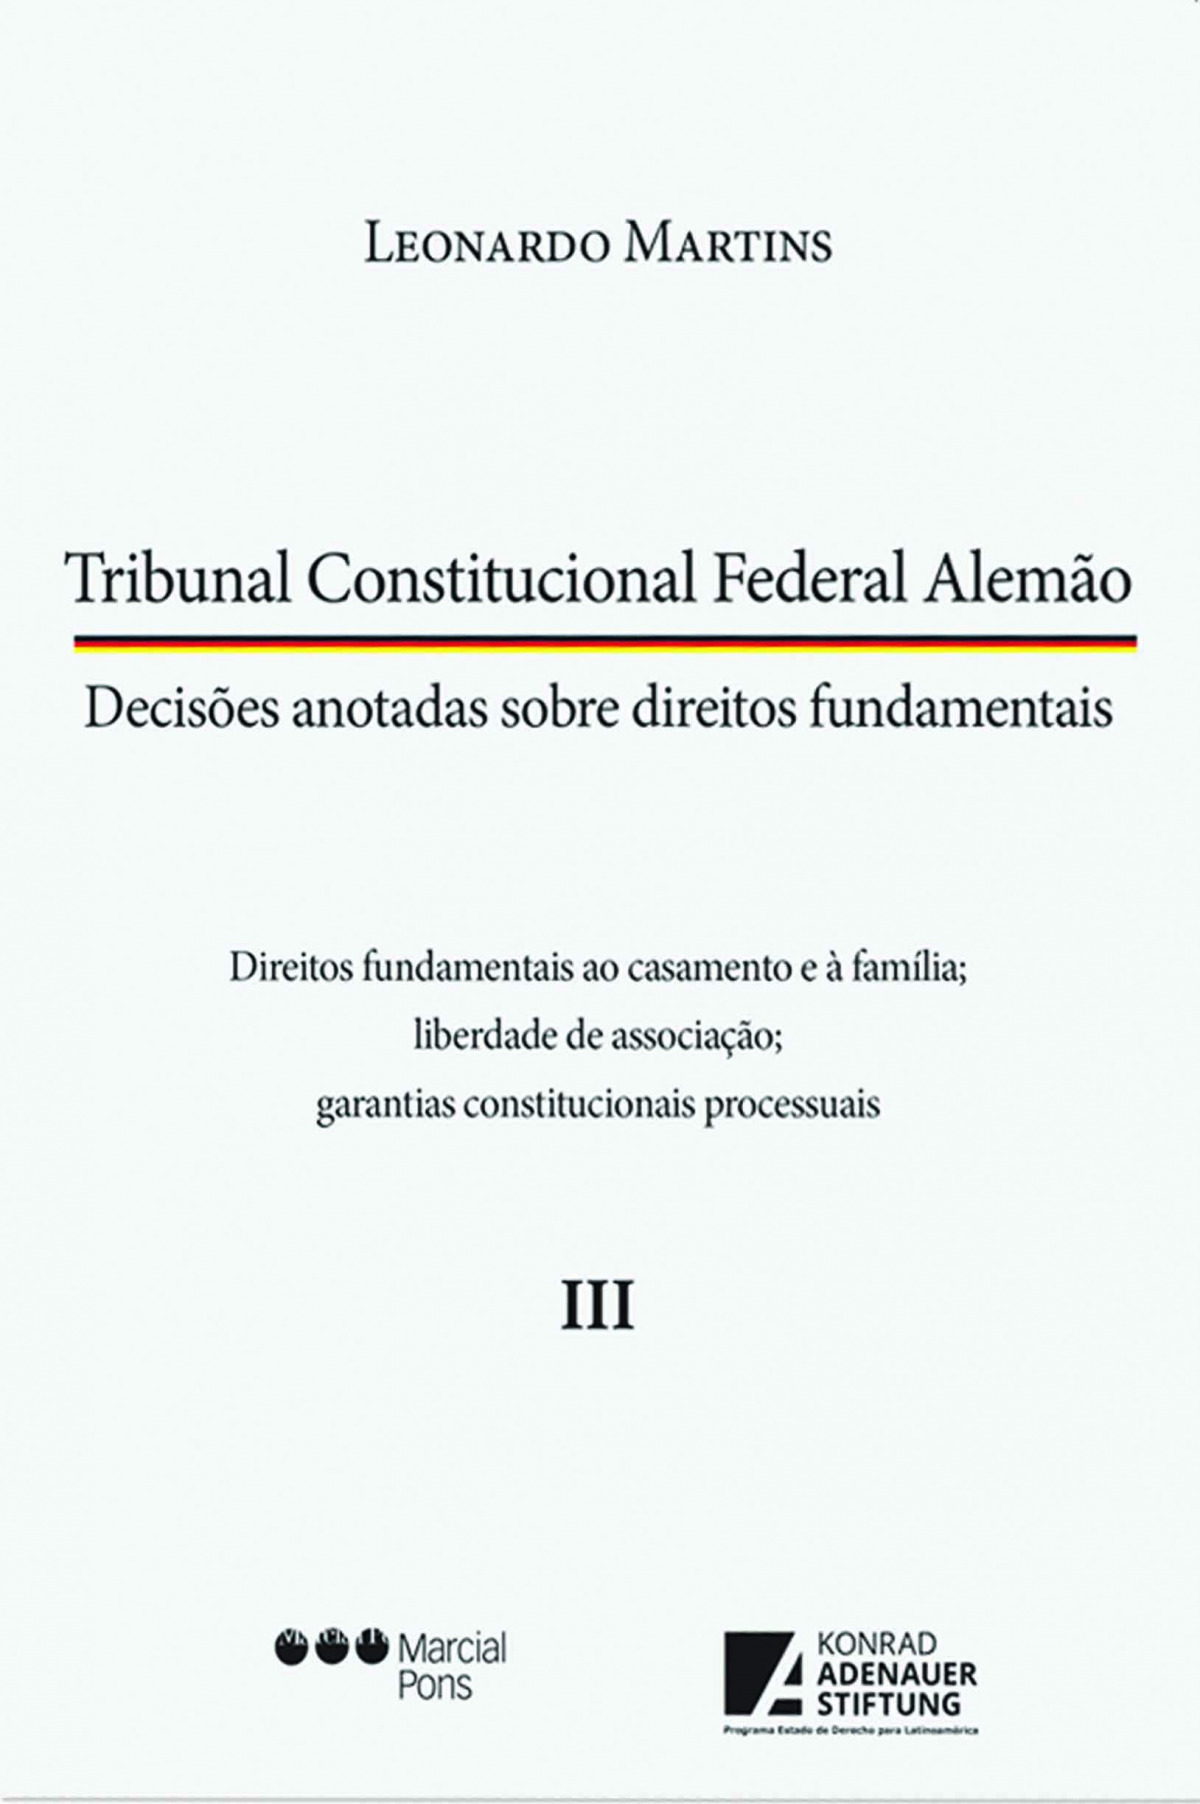 (port).tribunal constitucional federal alemao